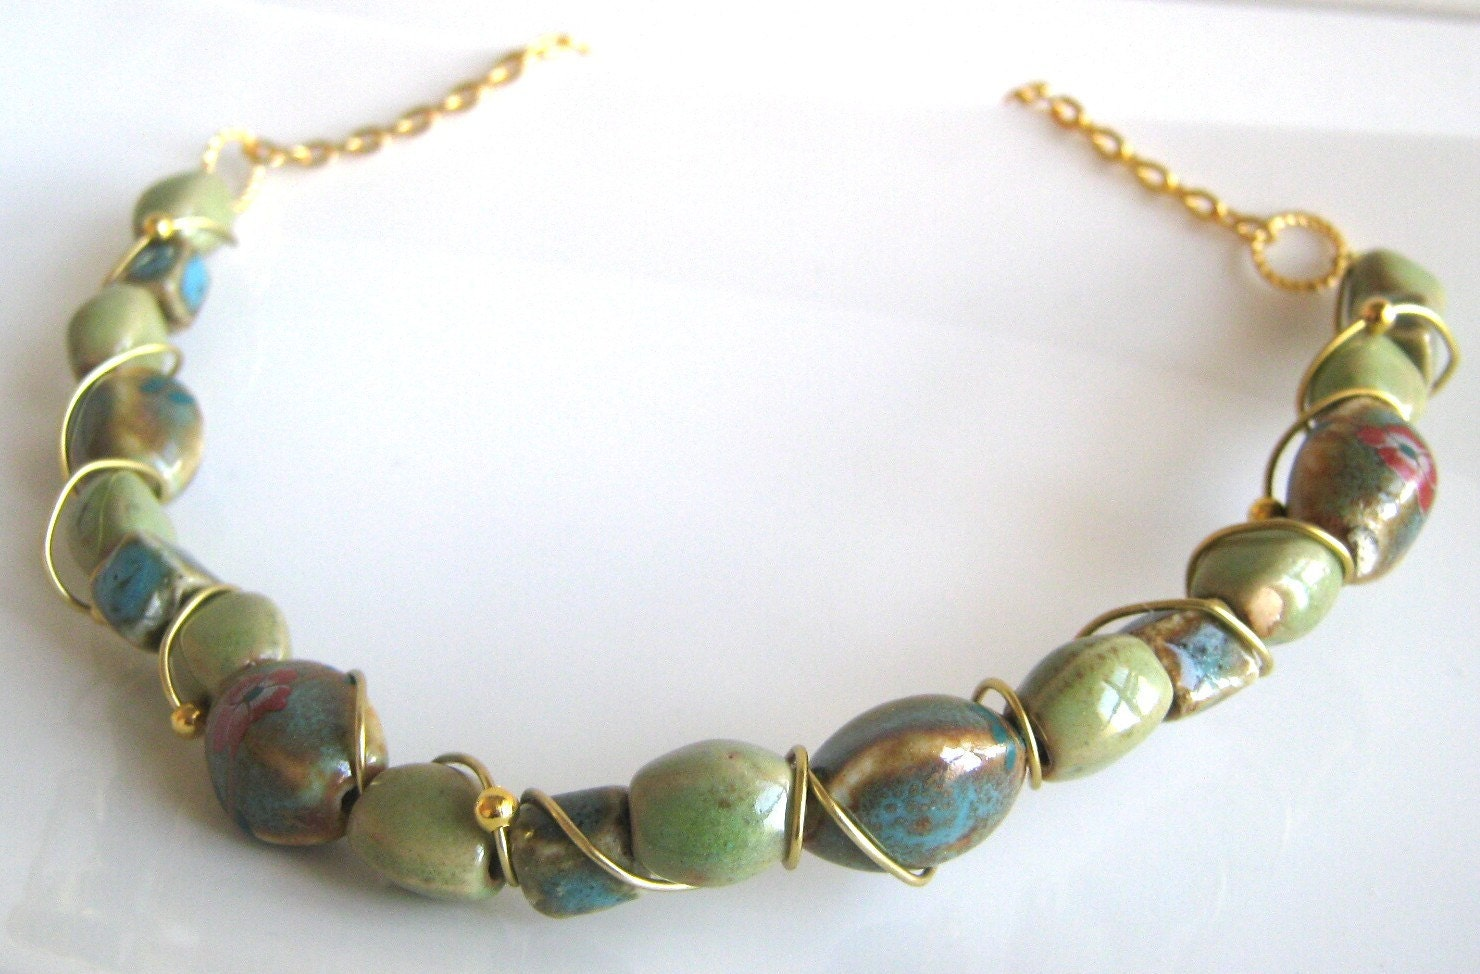 wire wrapped necklace in teal, green, blue - PORCELAIN PANSIES